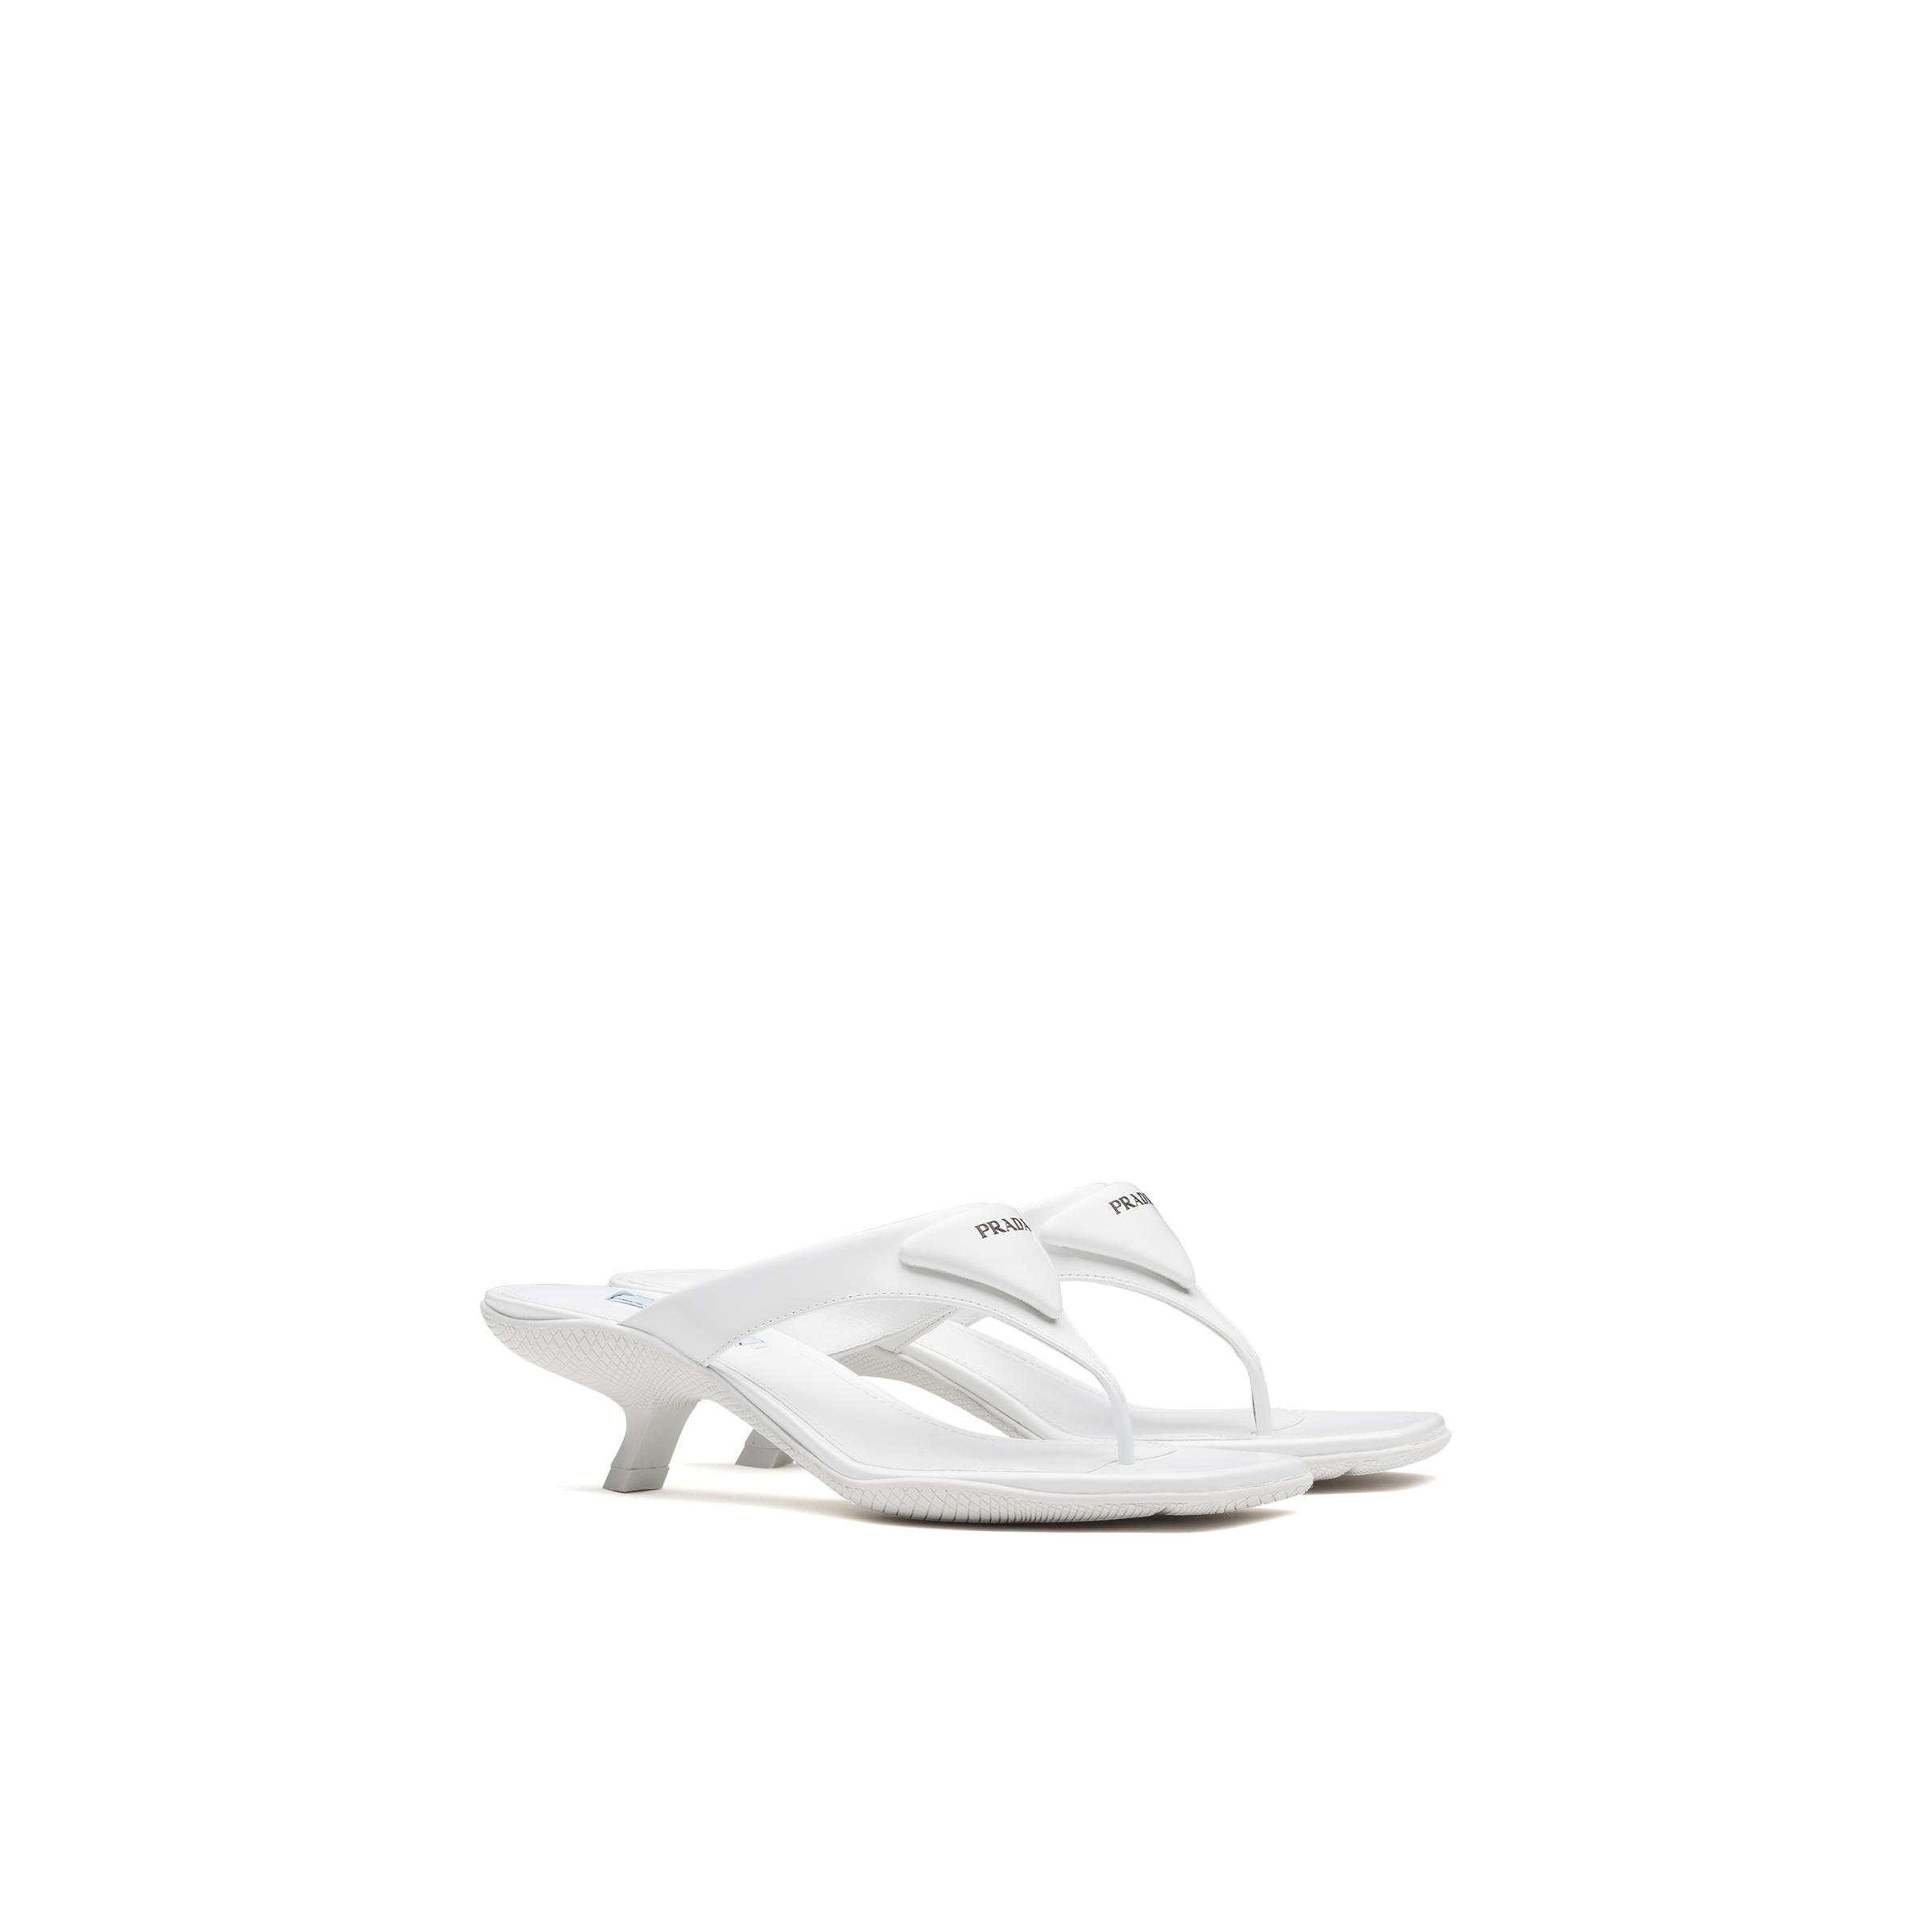 Brushed Leather High-heeled Thong Sandals Women White